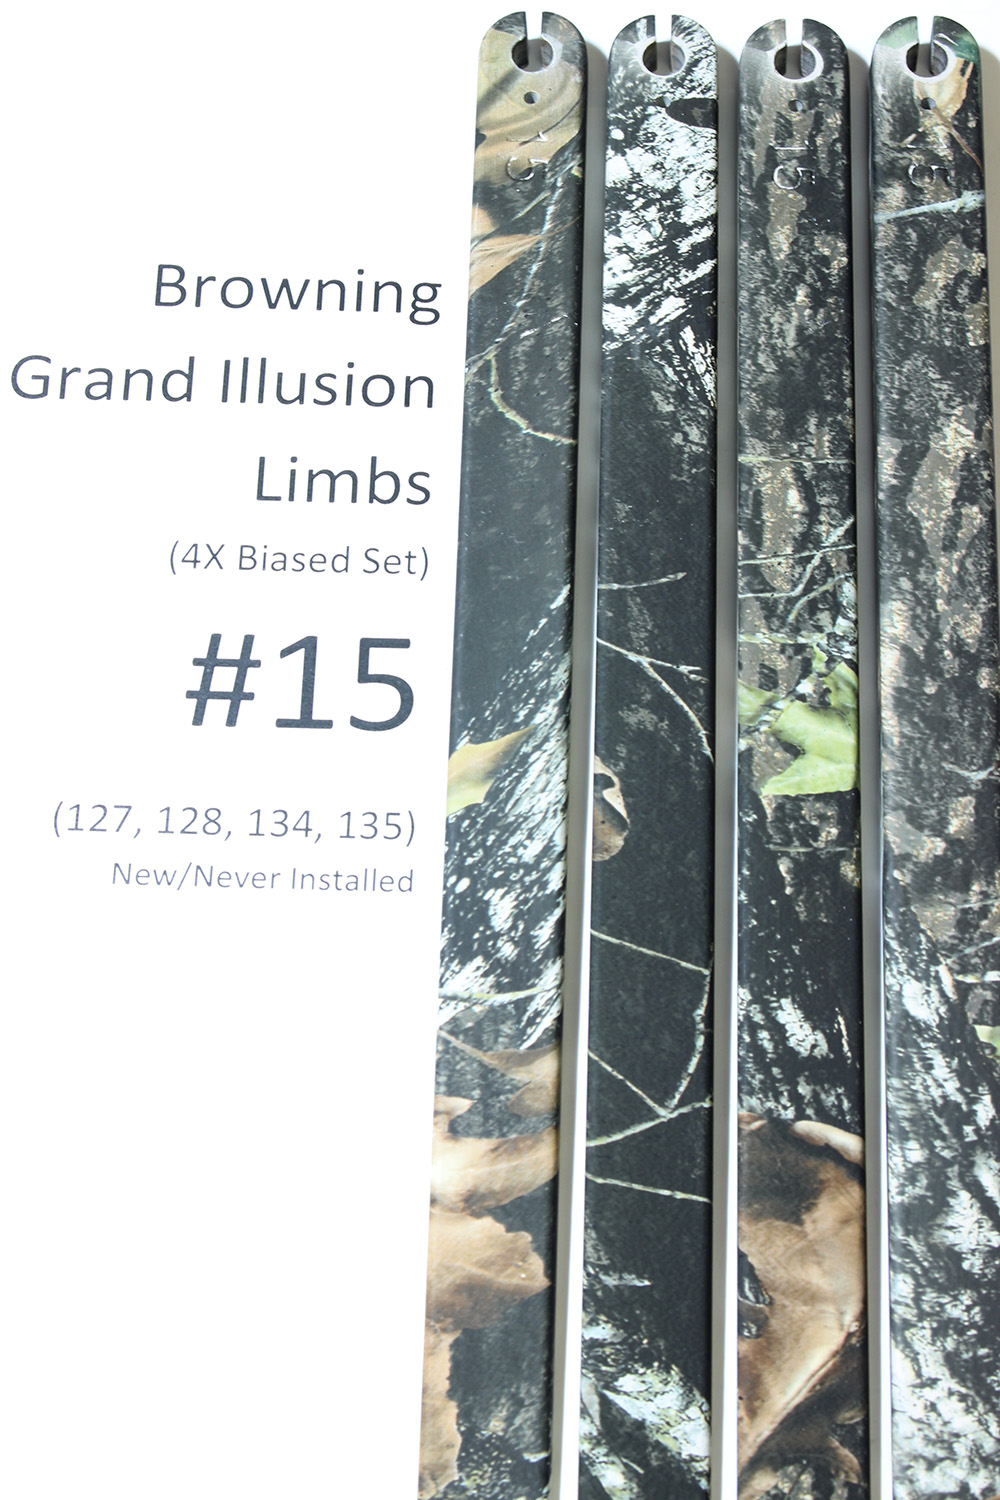 Factory Replacement #15 Limbs for Browning Grand Illusion Compound Bow, Biased Deflection 127/128/134/135 Set (4x) photo 2